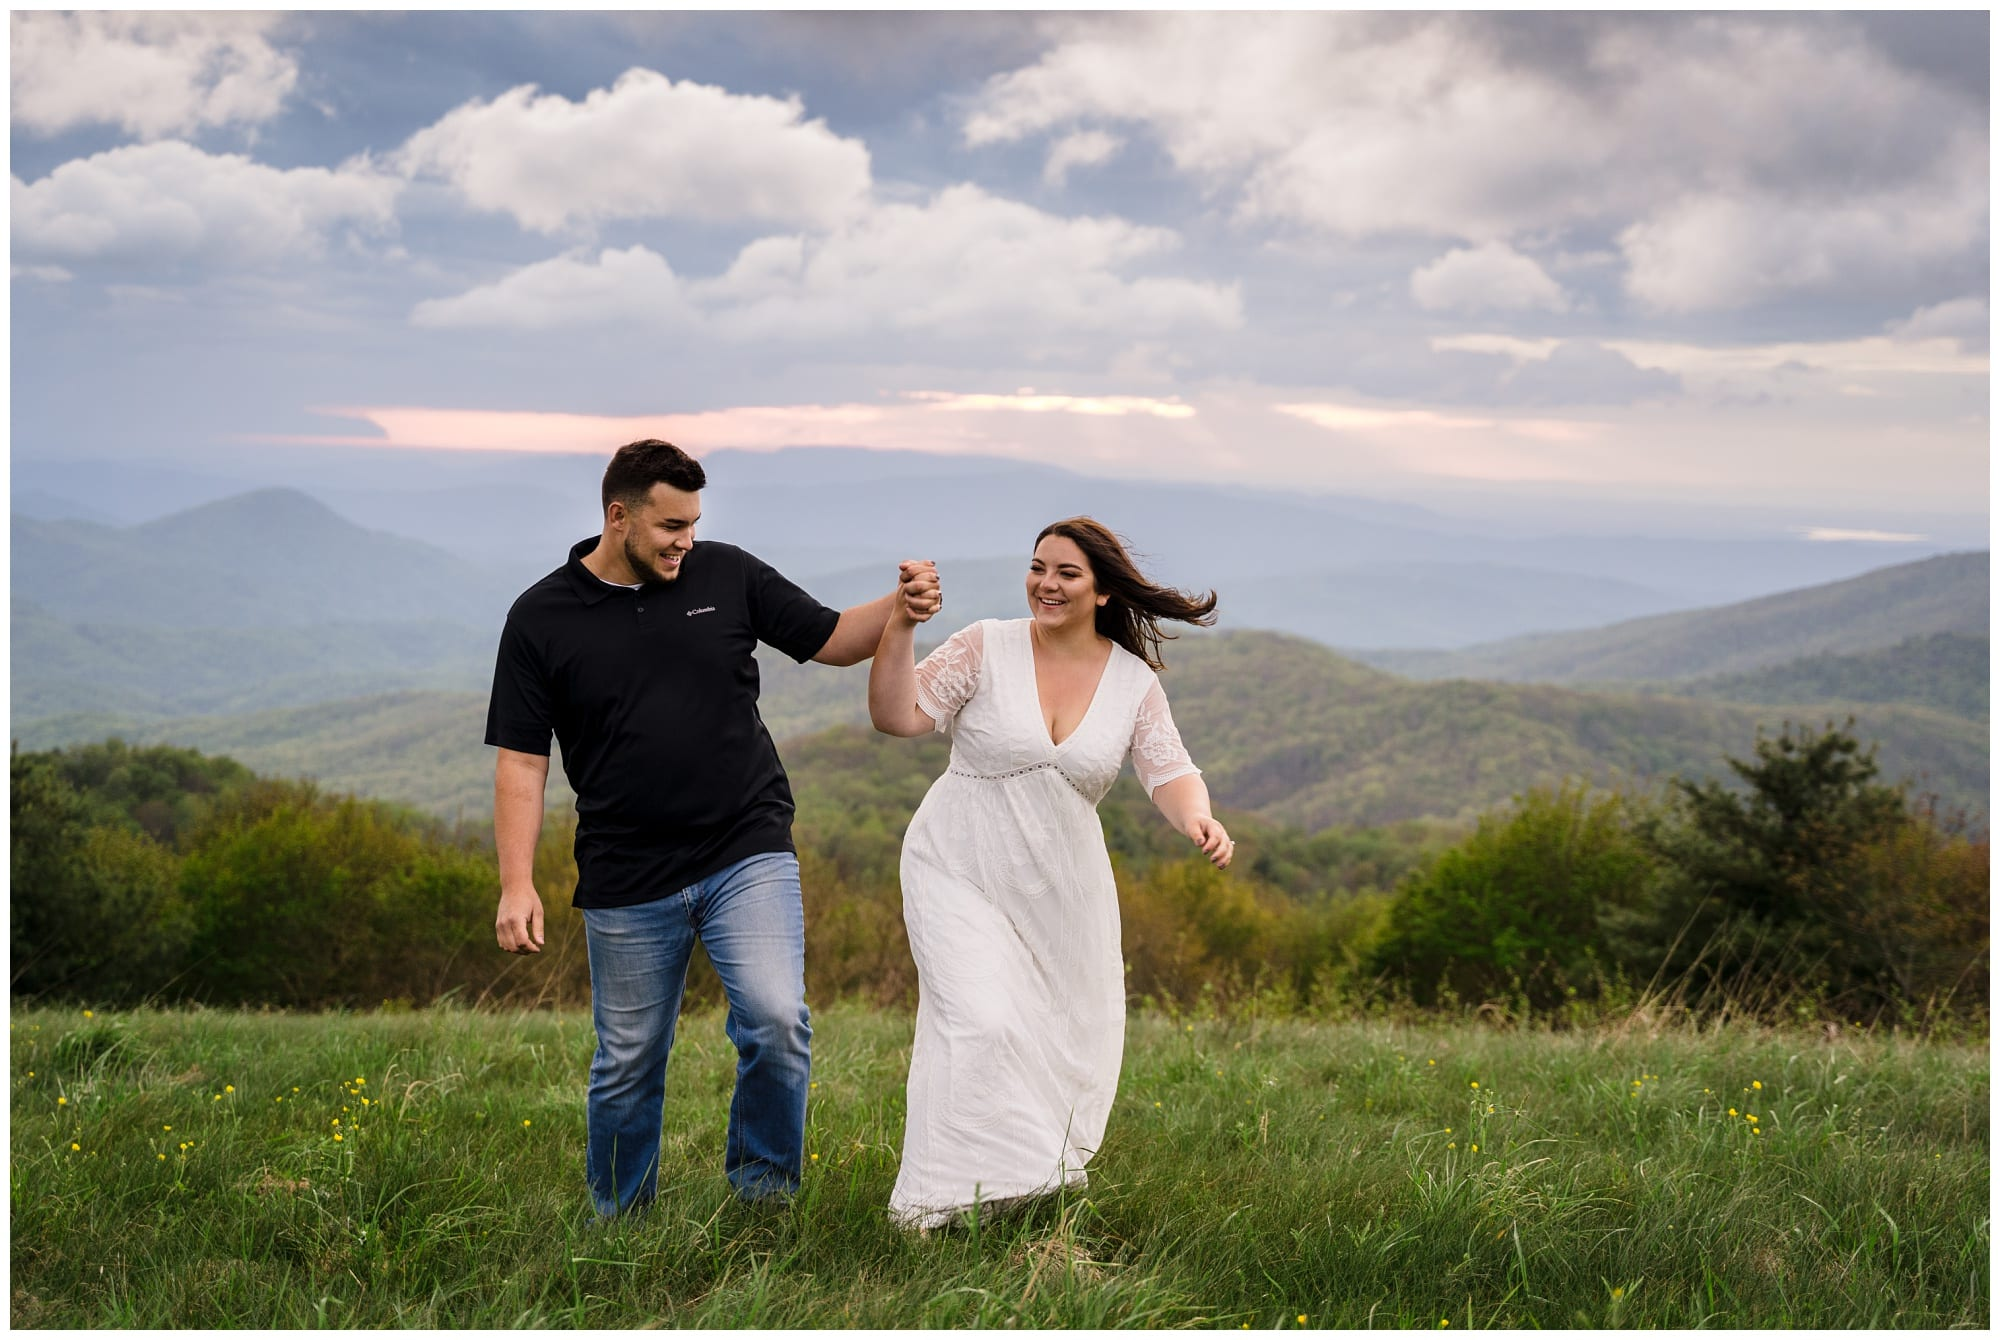 young engaged couple holding hands walking through grassy field overlooking mountain range smiling at one another